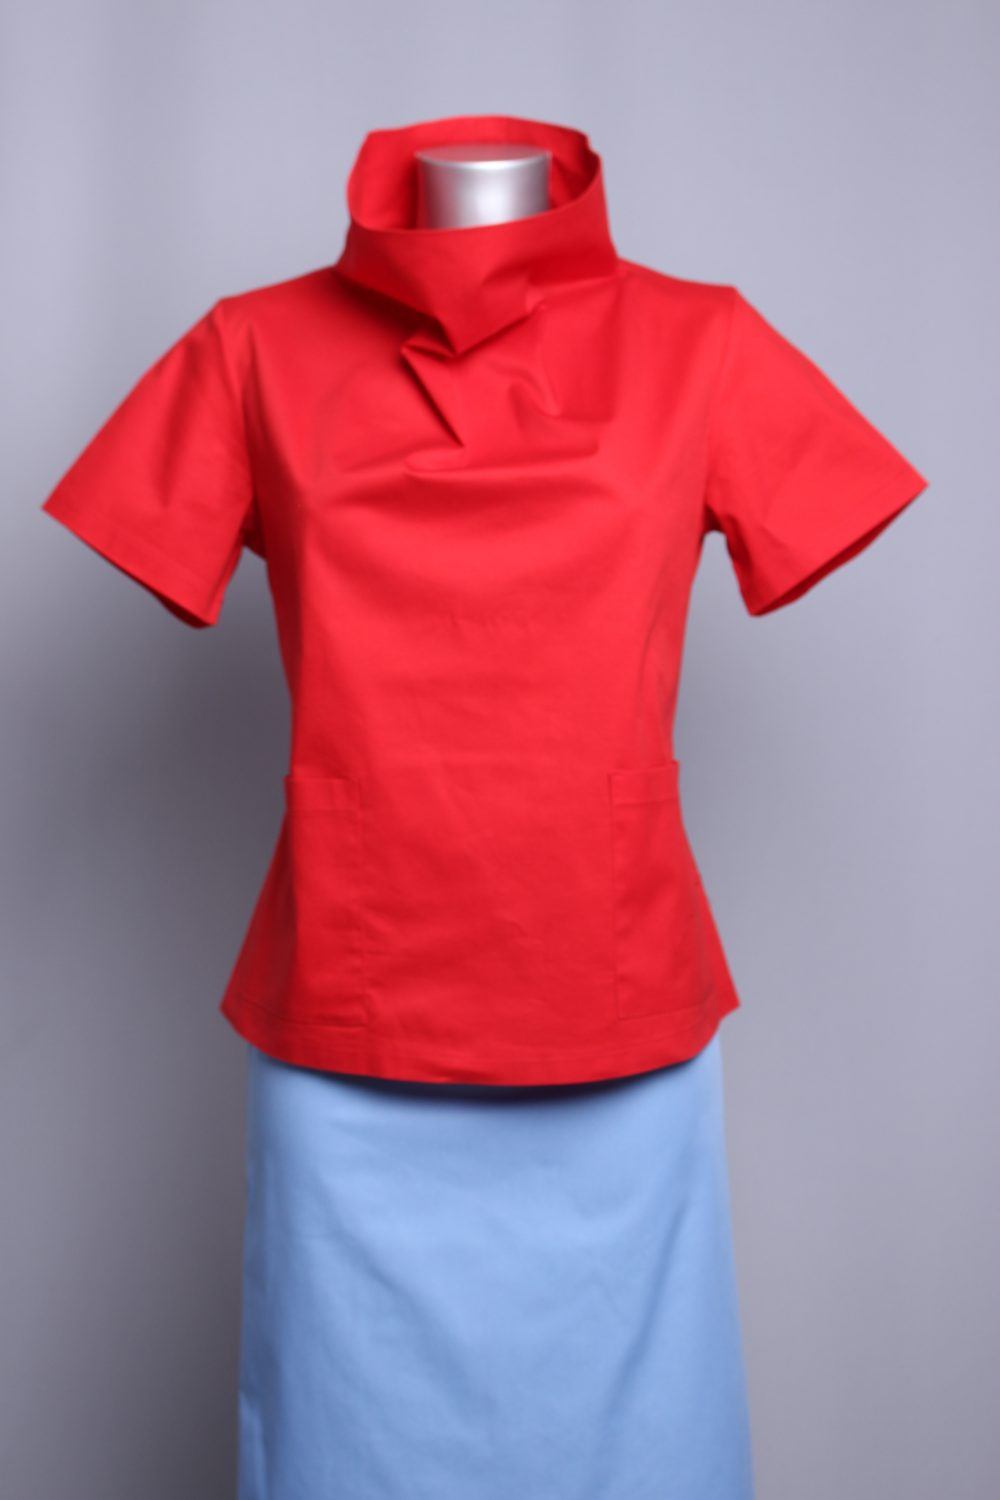 medical, hairdressers and wellness uniforms